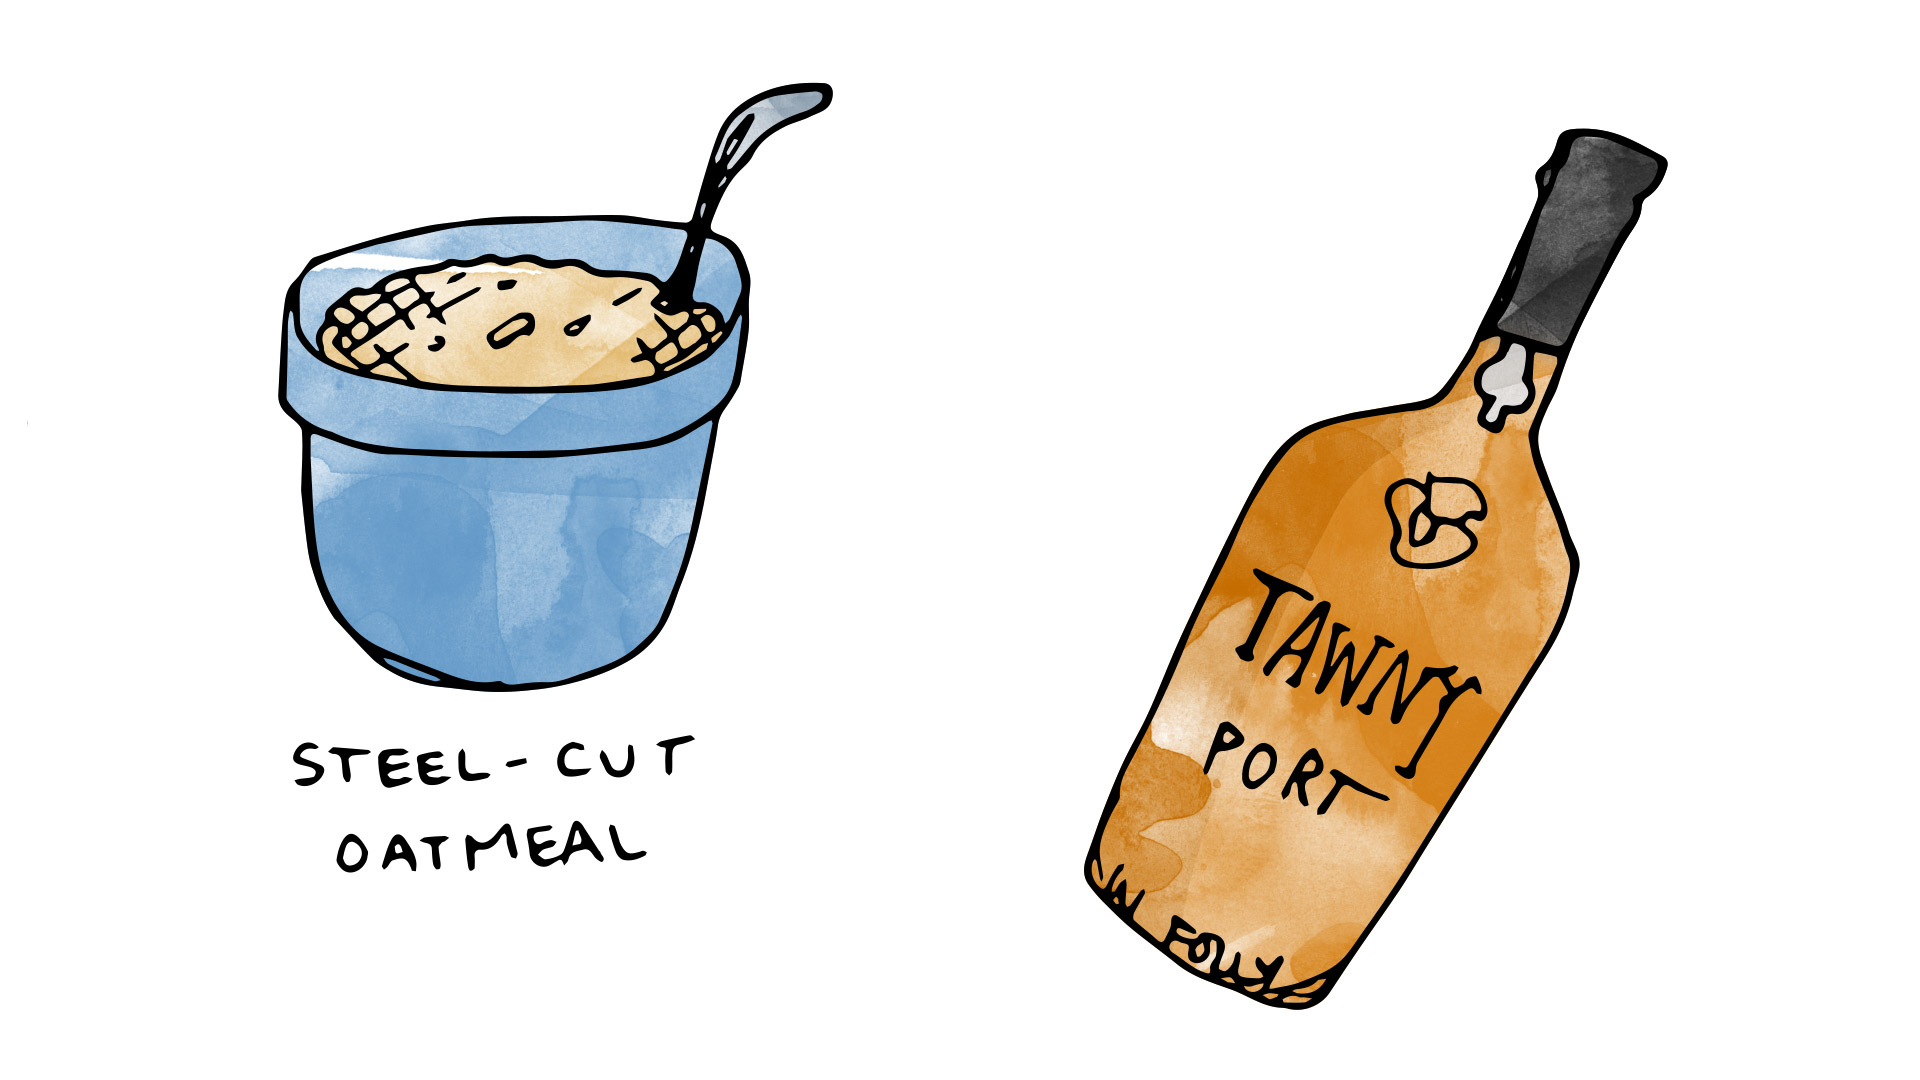 steel cut oatmeal illustration wine pairing with tawny port illustration by Wine Folly